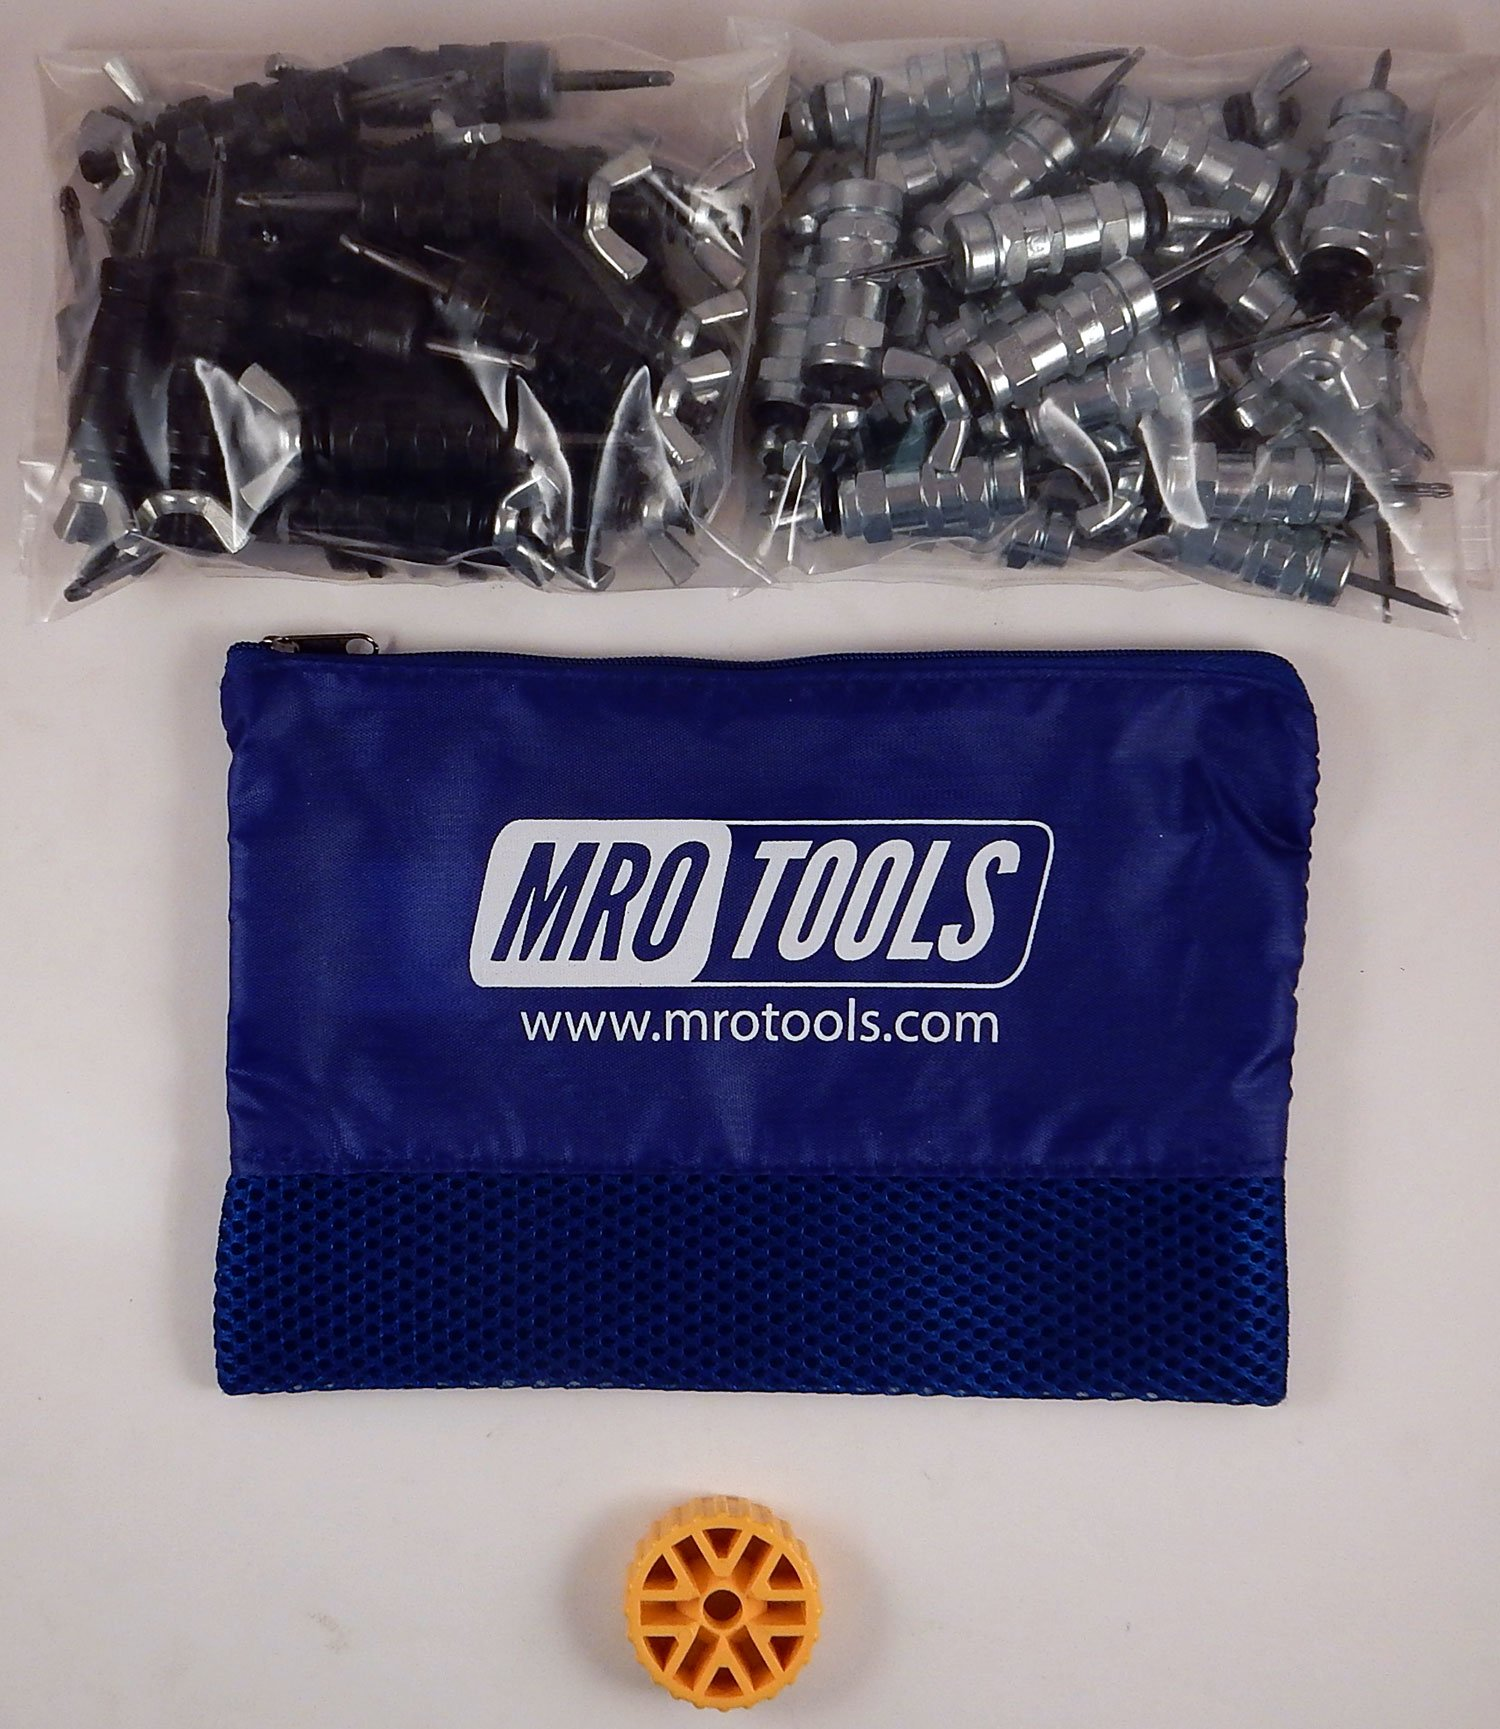 25 5/32 & 25 3/32 Standard Wing-Nut Cleco Fastener w HBHT Tool & Bag (KWN4S50-6) by MRO Tools Cleco Fasteners